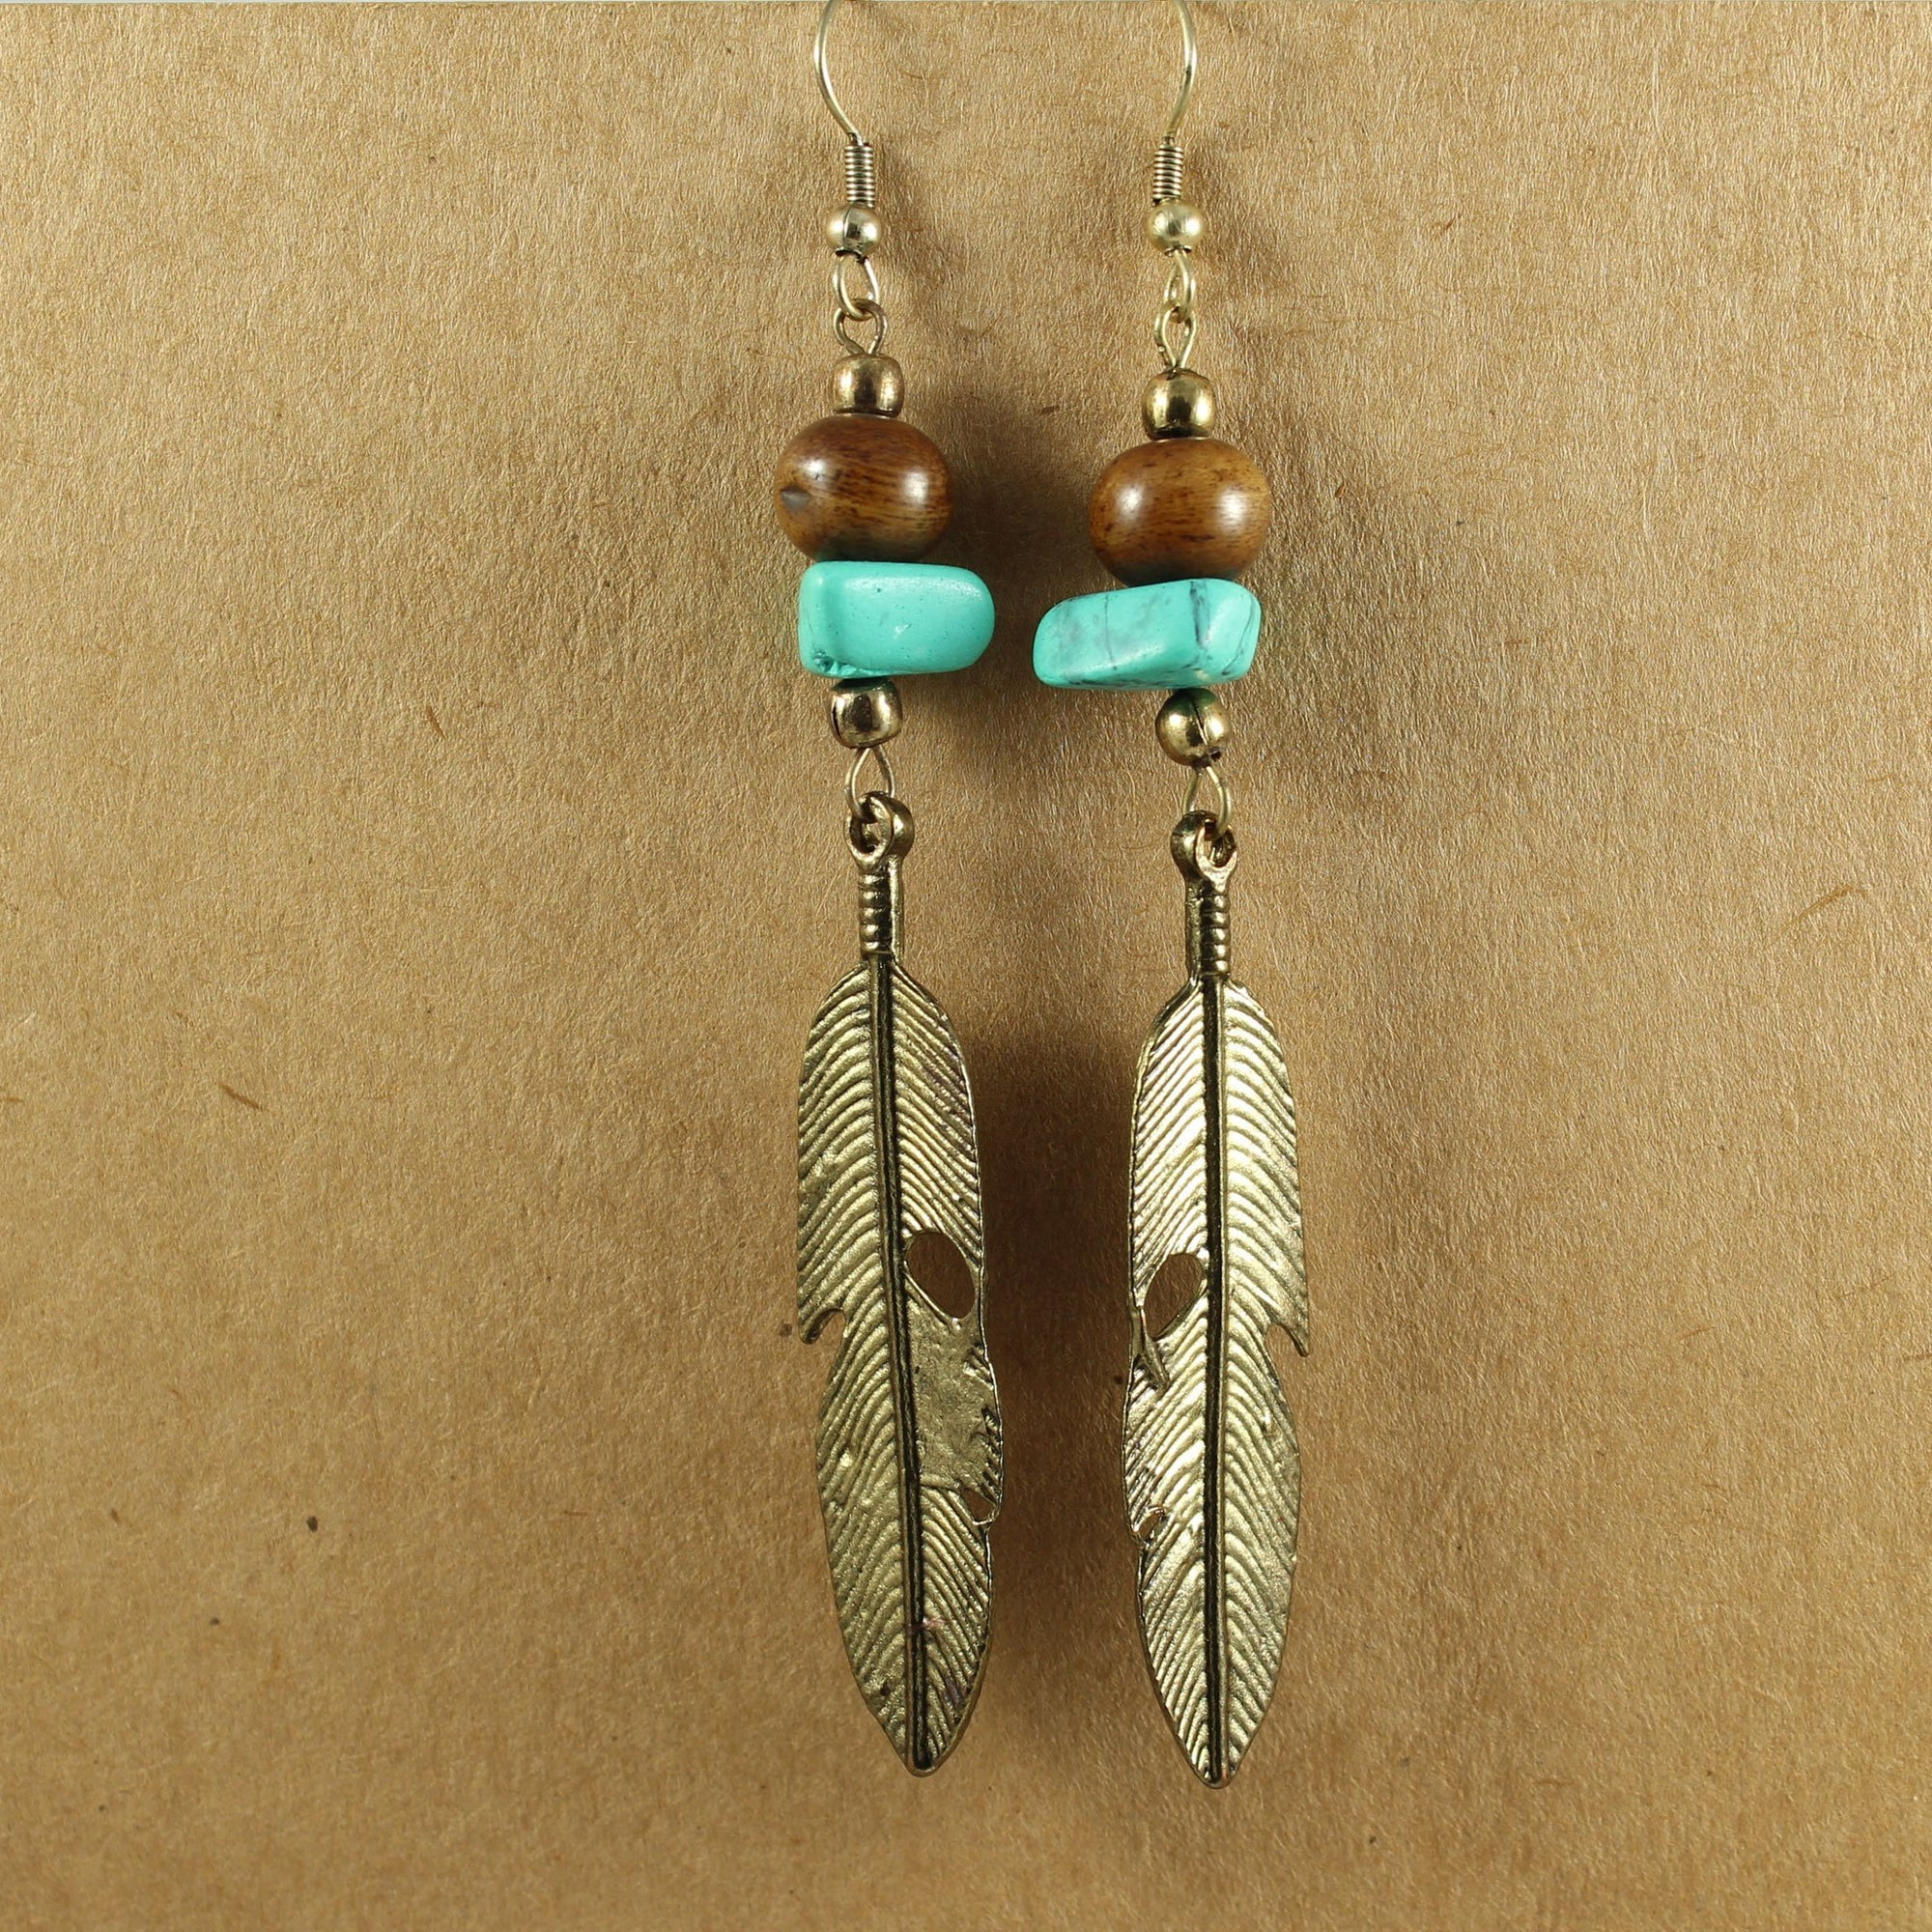 Bronze Feather & Turquoise Earrings | Earrings - The Naughty Shrew